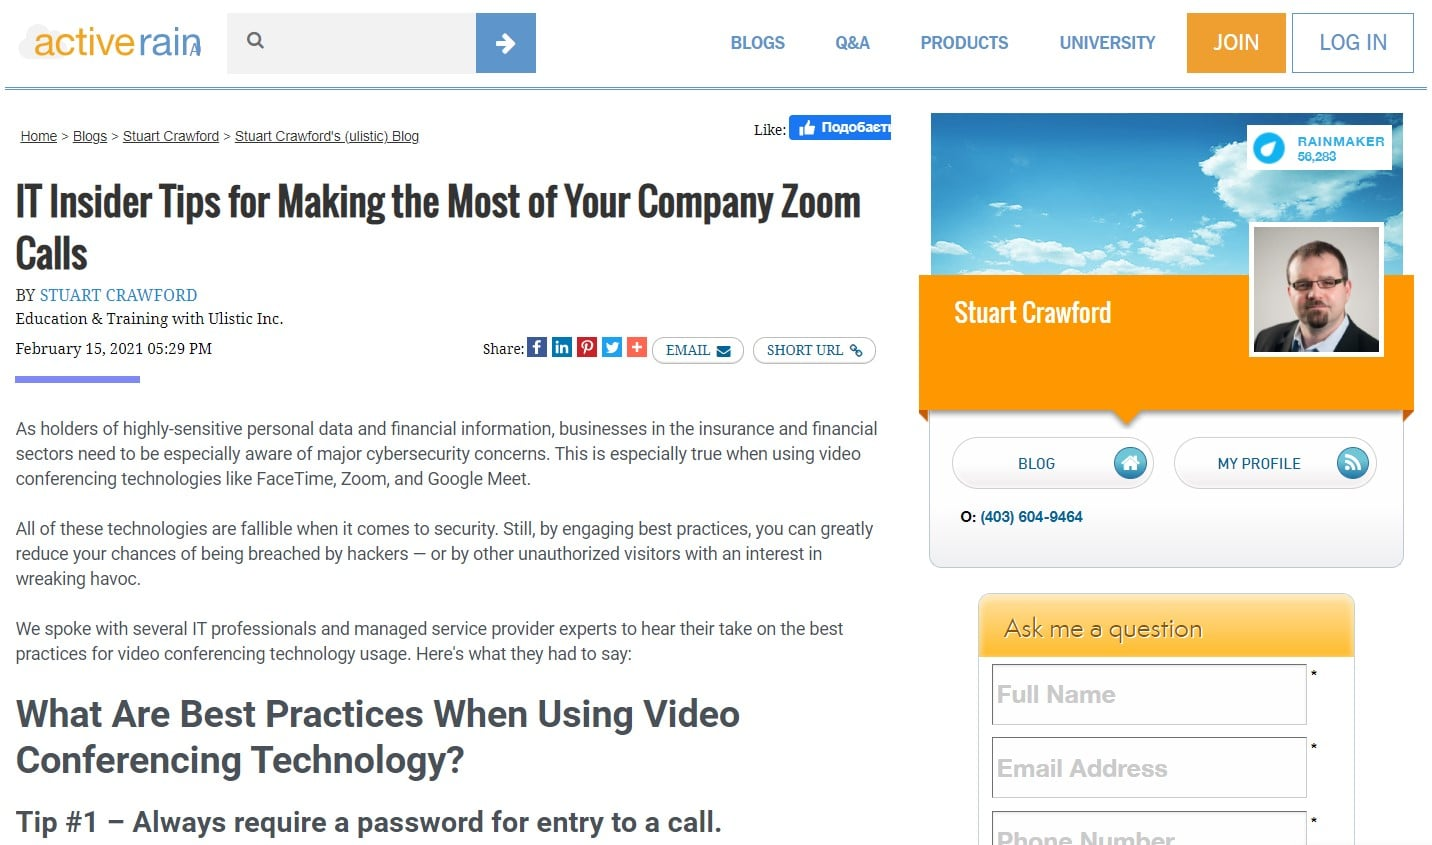 IT Insider Tips for Making the Most of Your Company Zoom Calls